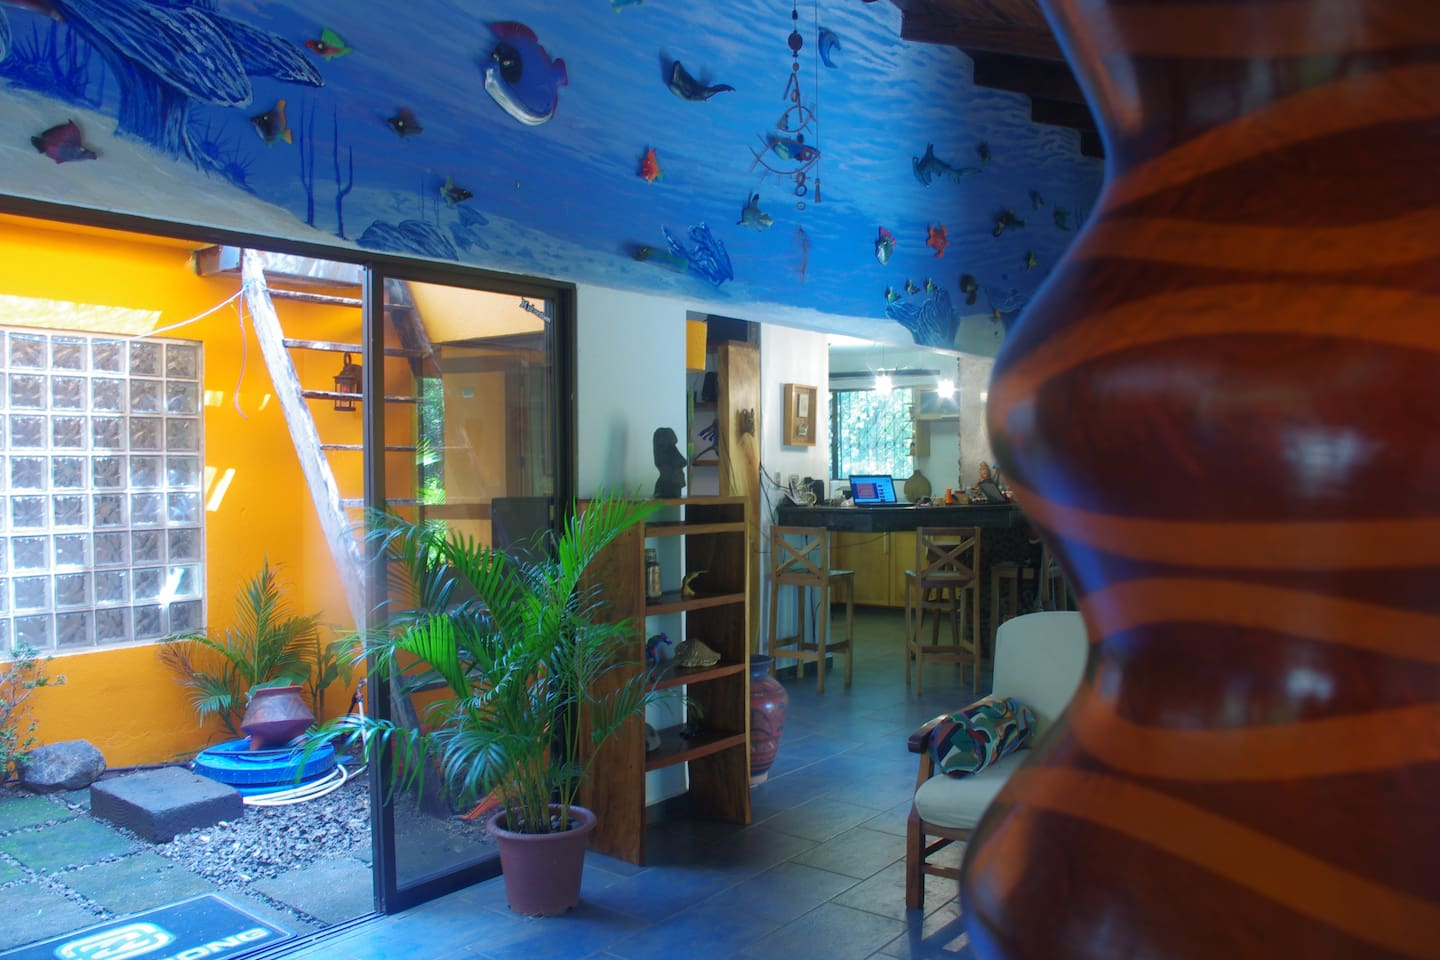 The main focus of the entire living area is an undersea mural with 30 3D handmade sea life sculptures. It's amazing!